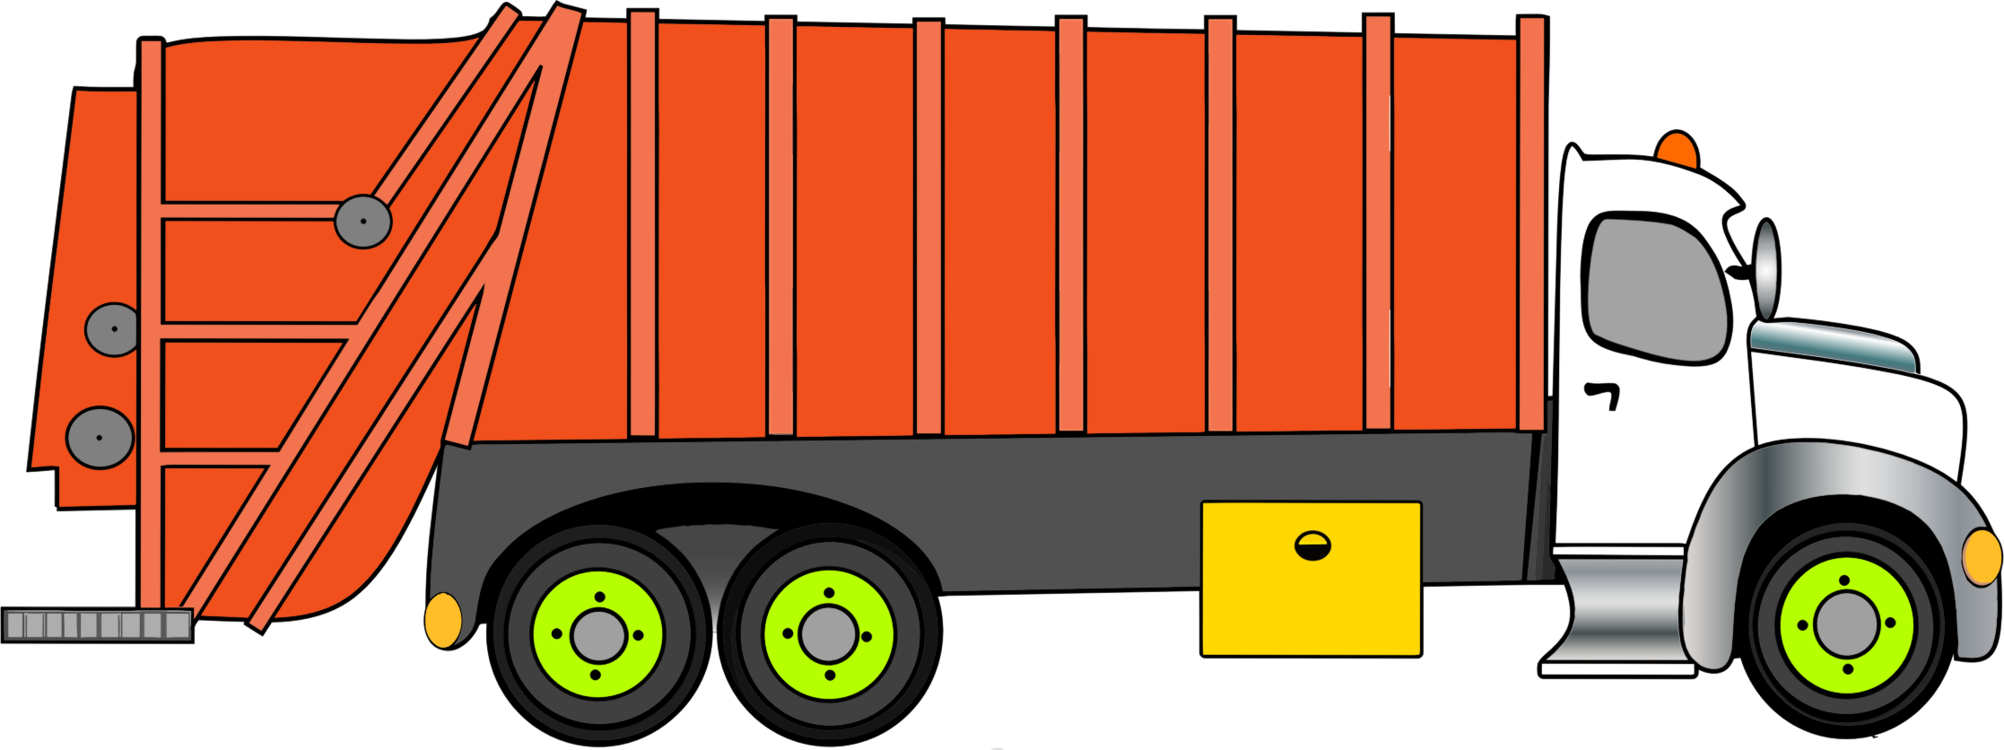 Garbage truck clipart clipart images gallery for free download.